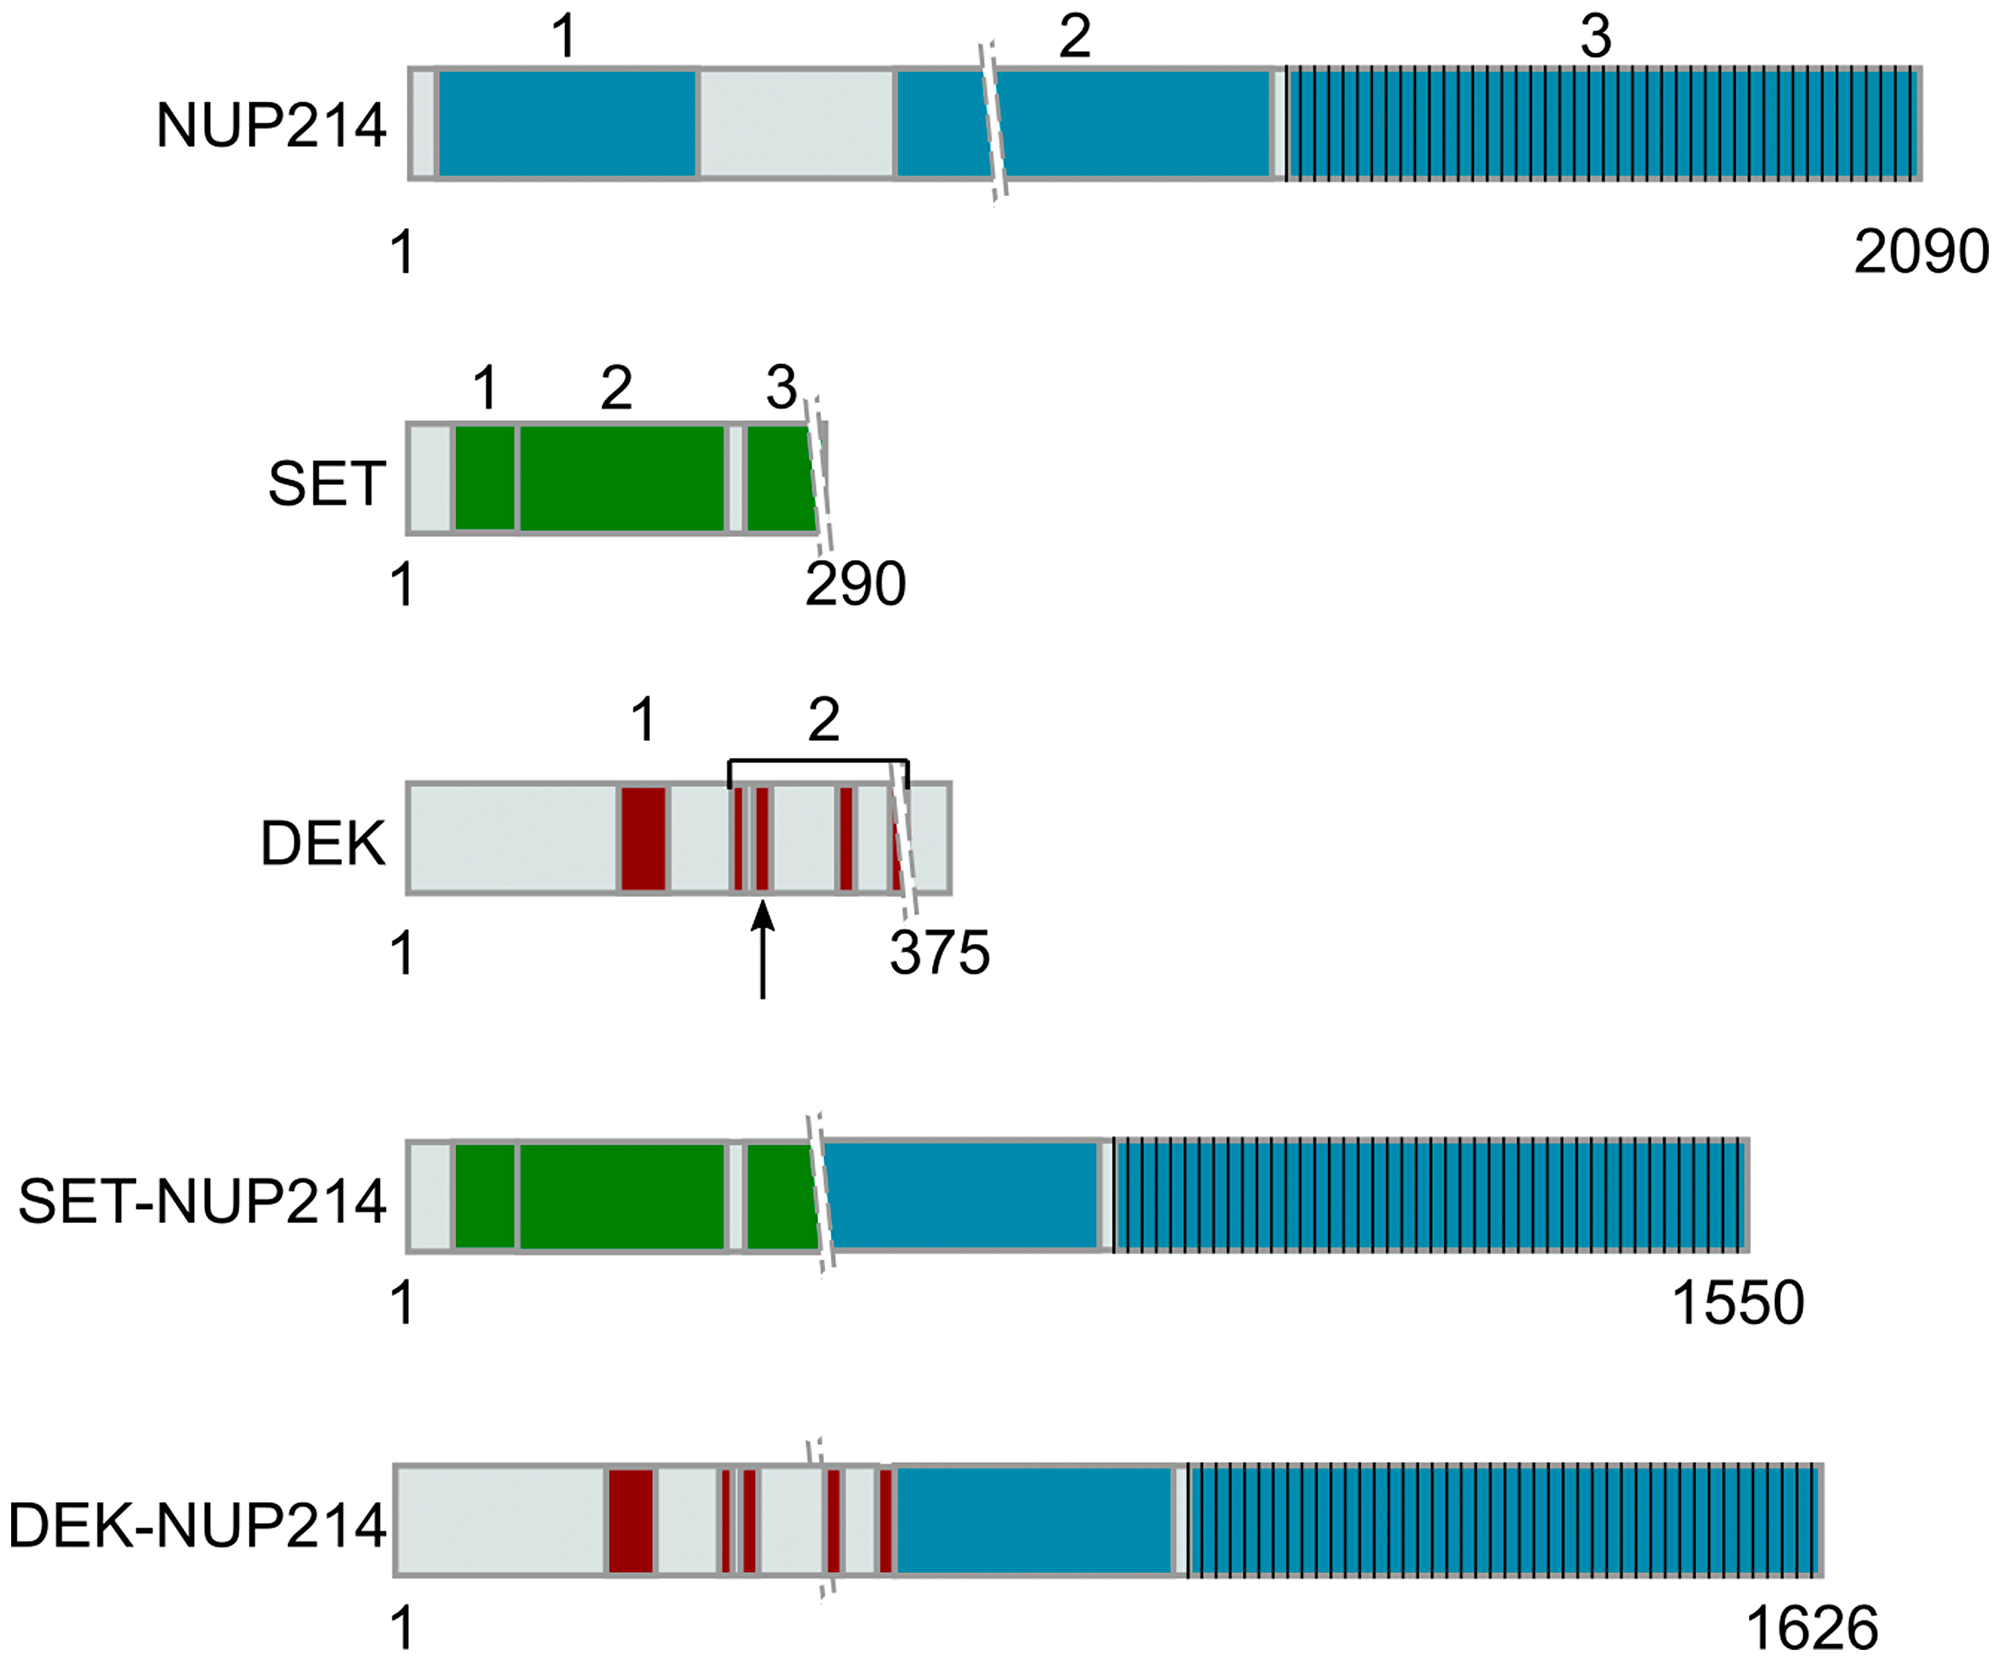 Representation of NUP214 and its binding partners in leukemogenic NUP214 fusion proteins.